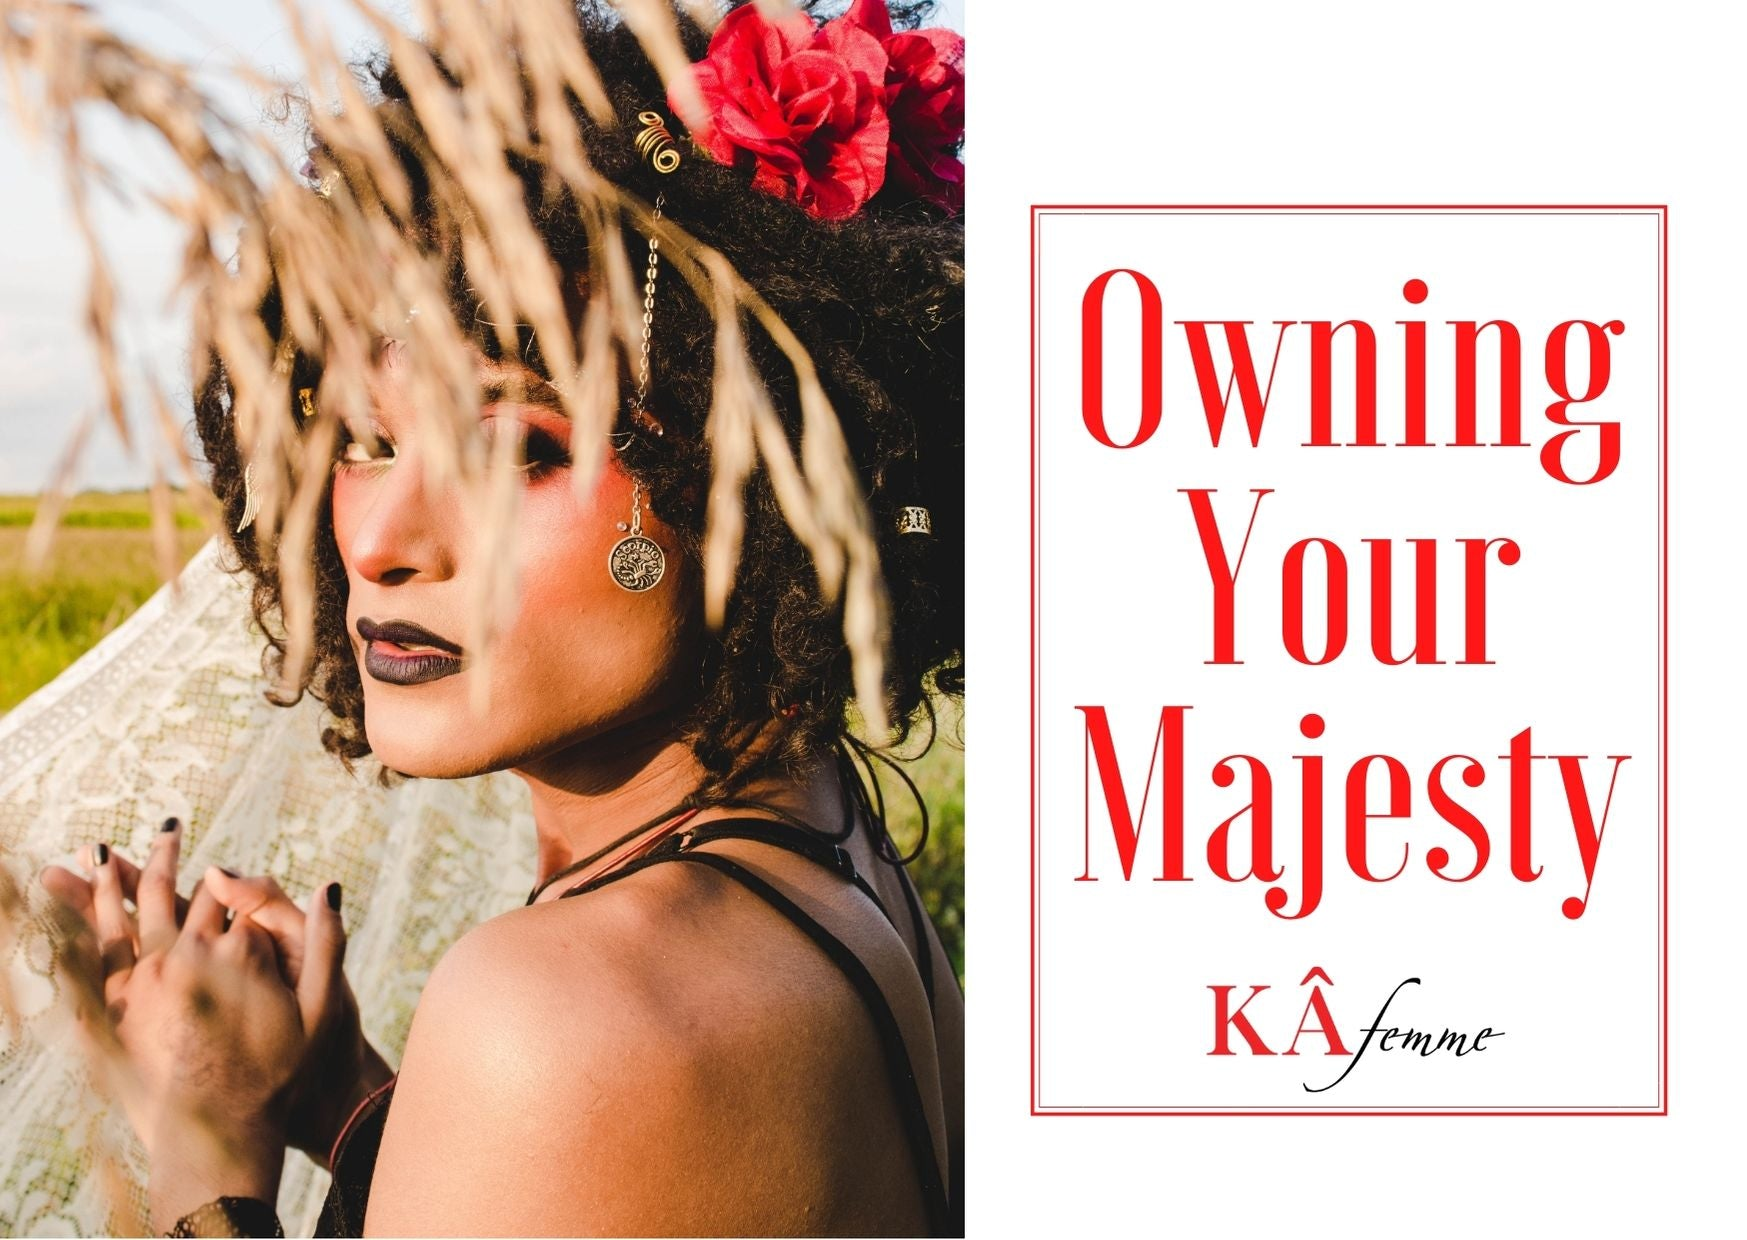 Owning your Majesty: A Guide for Our Trans Sisters and Those Embracing their Femininity